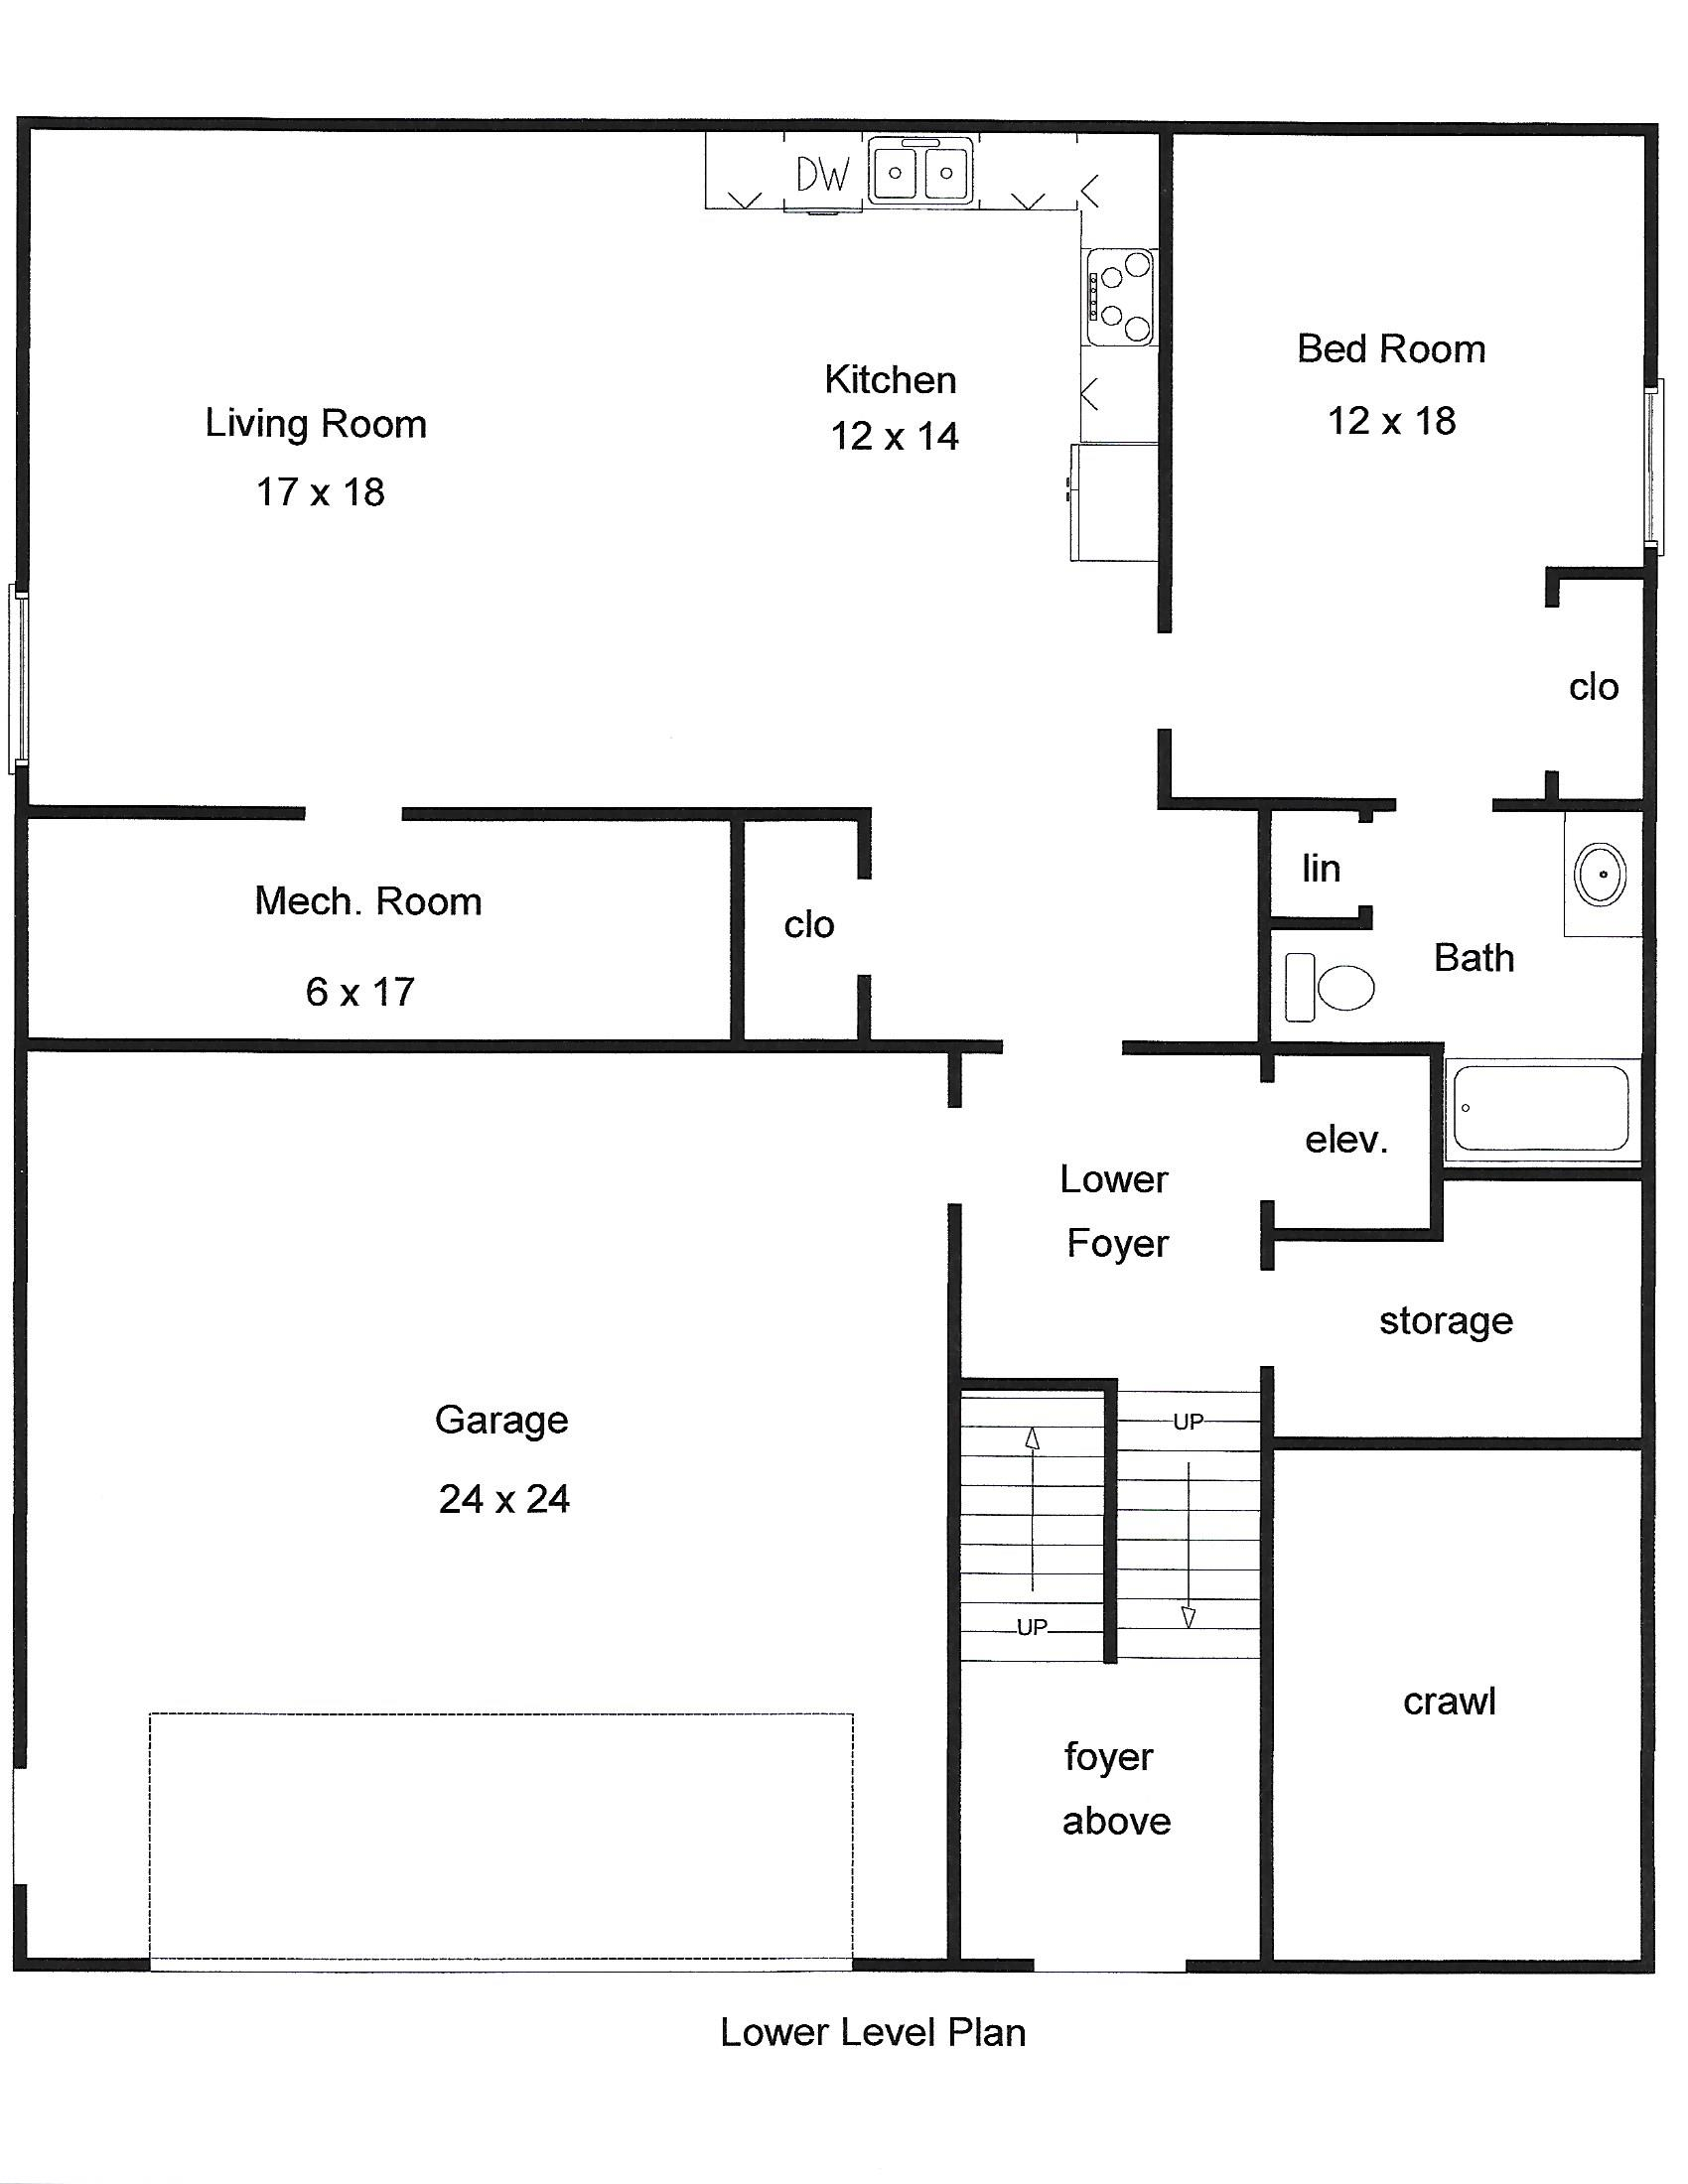 Ellicott Basement Floorplan